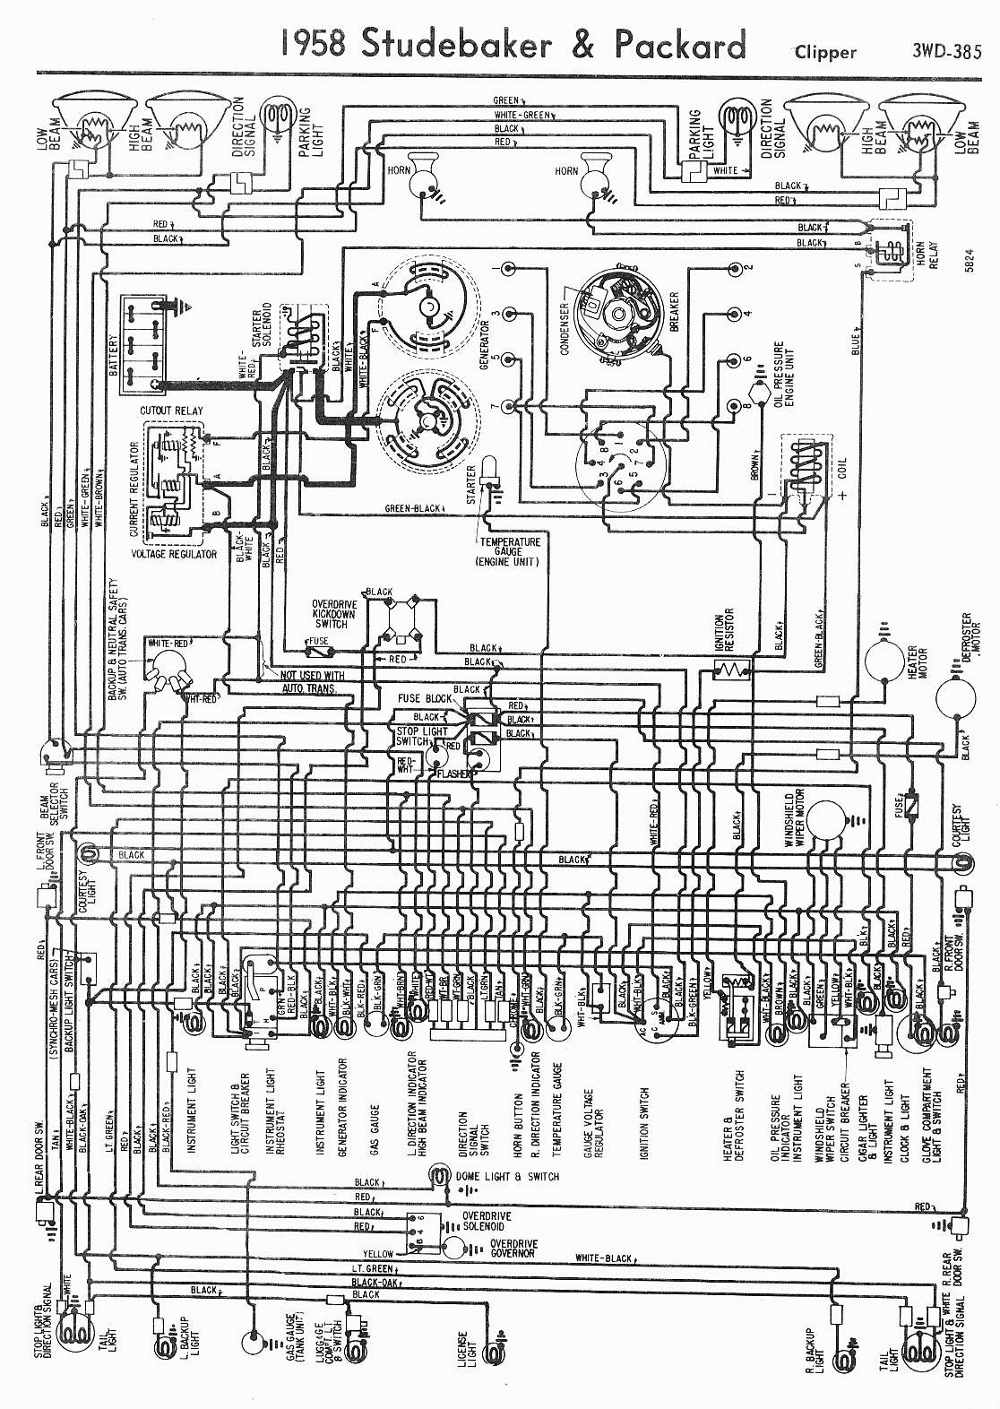 Packard Wiring Diagram List Of Schematic Circuit Radio Diagrams 911 1958 Studebaker And Clipper Rh Wiringdiagrams911 Blogspot Com C230c C230b